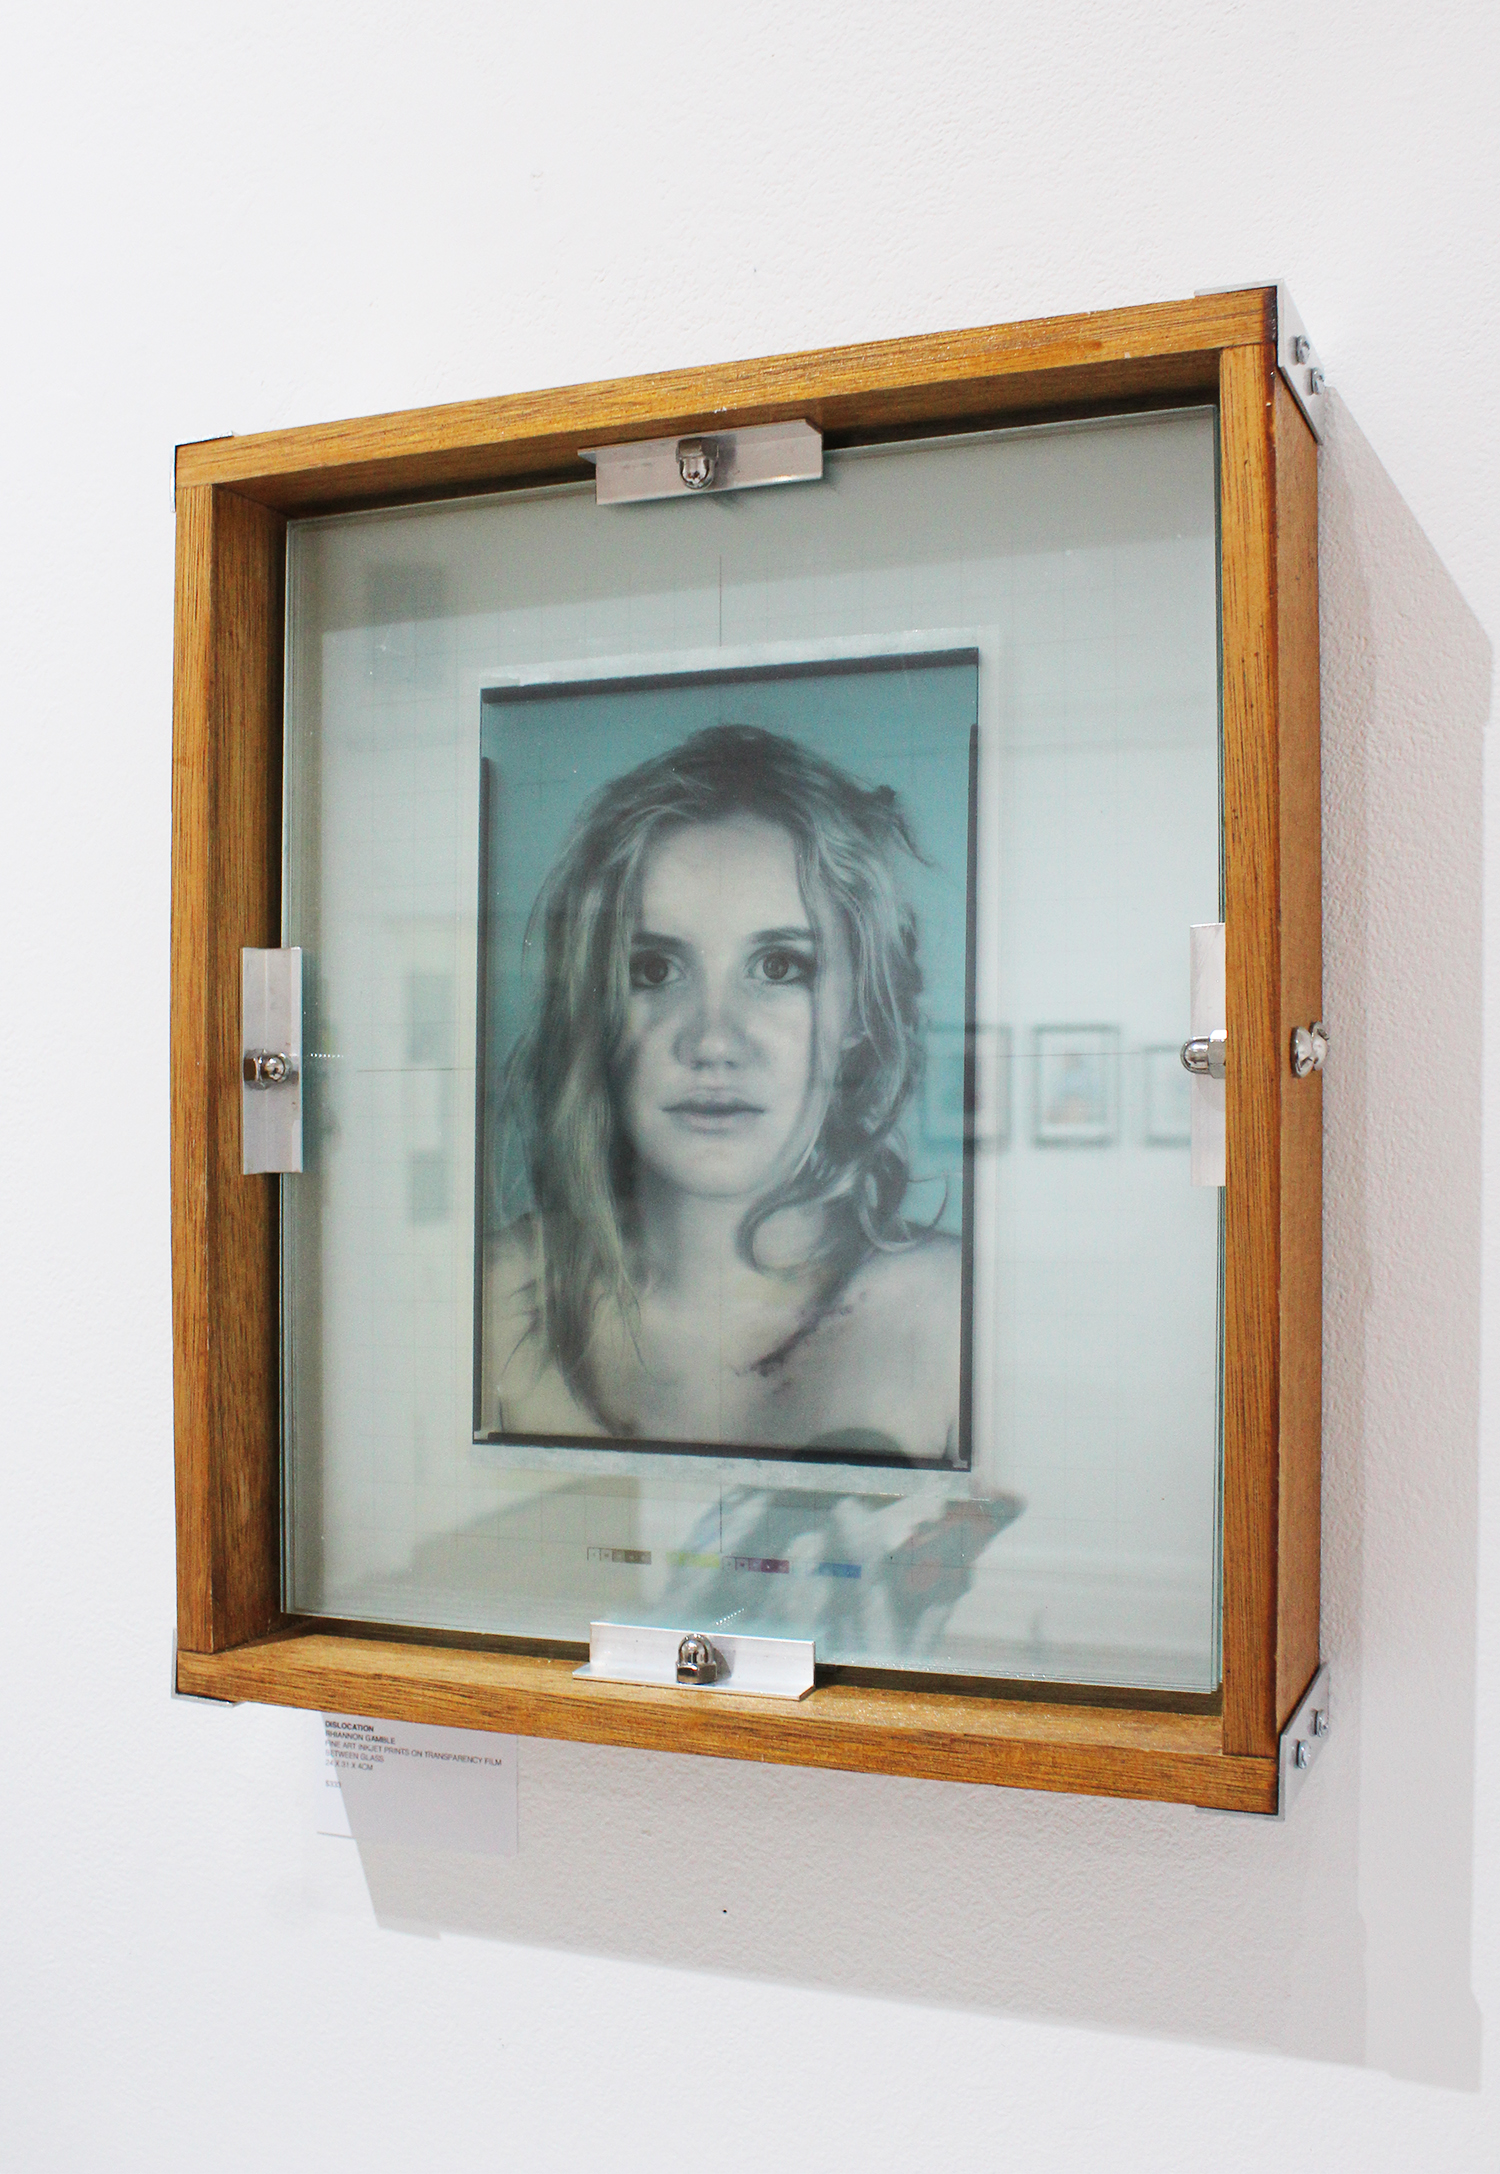 Rhiannon Gamble,  Dislocation , fine art ink jet prints on transparency film between glass, 24x31x4cm